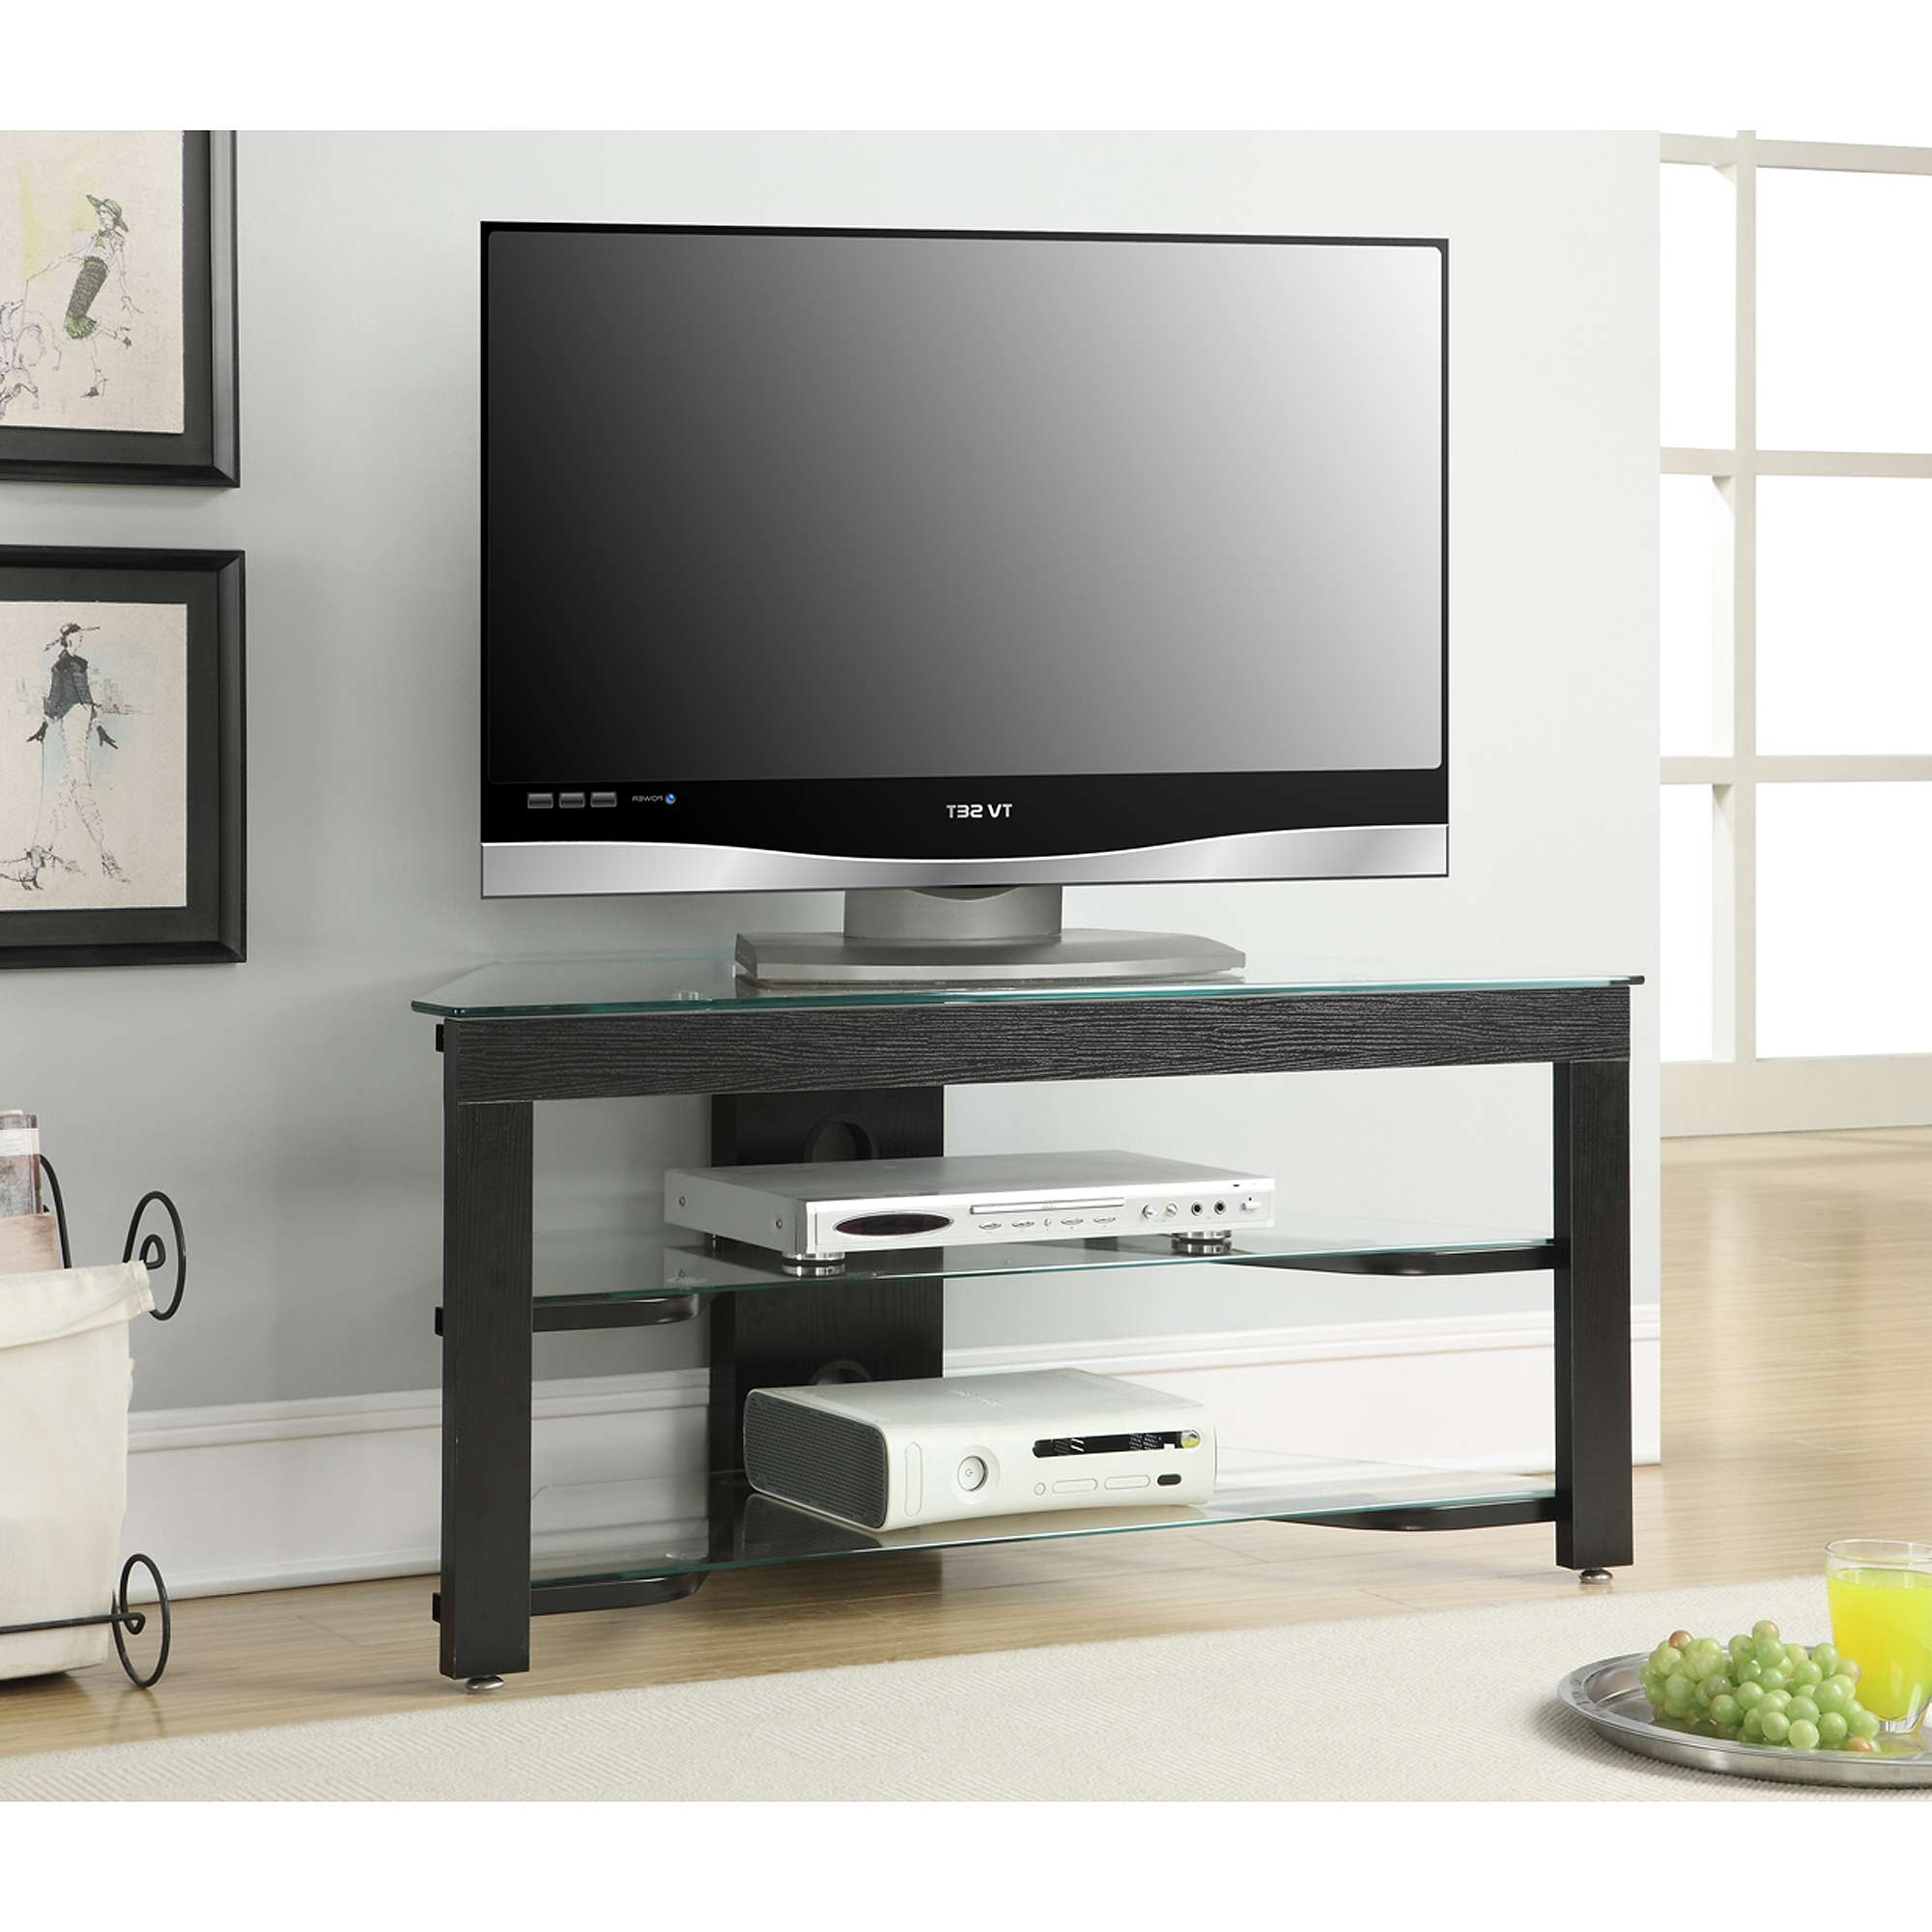 Tv Stand Designs For Corners : Tv stand with rounded edges round decorating ideas